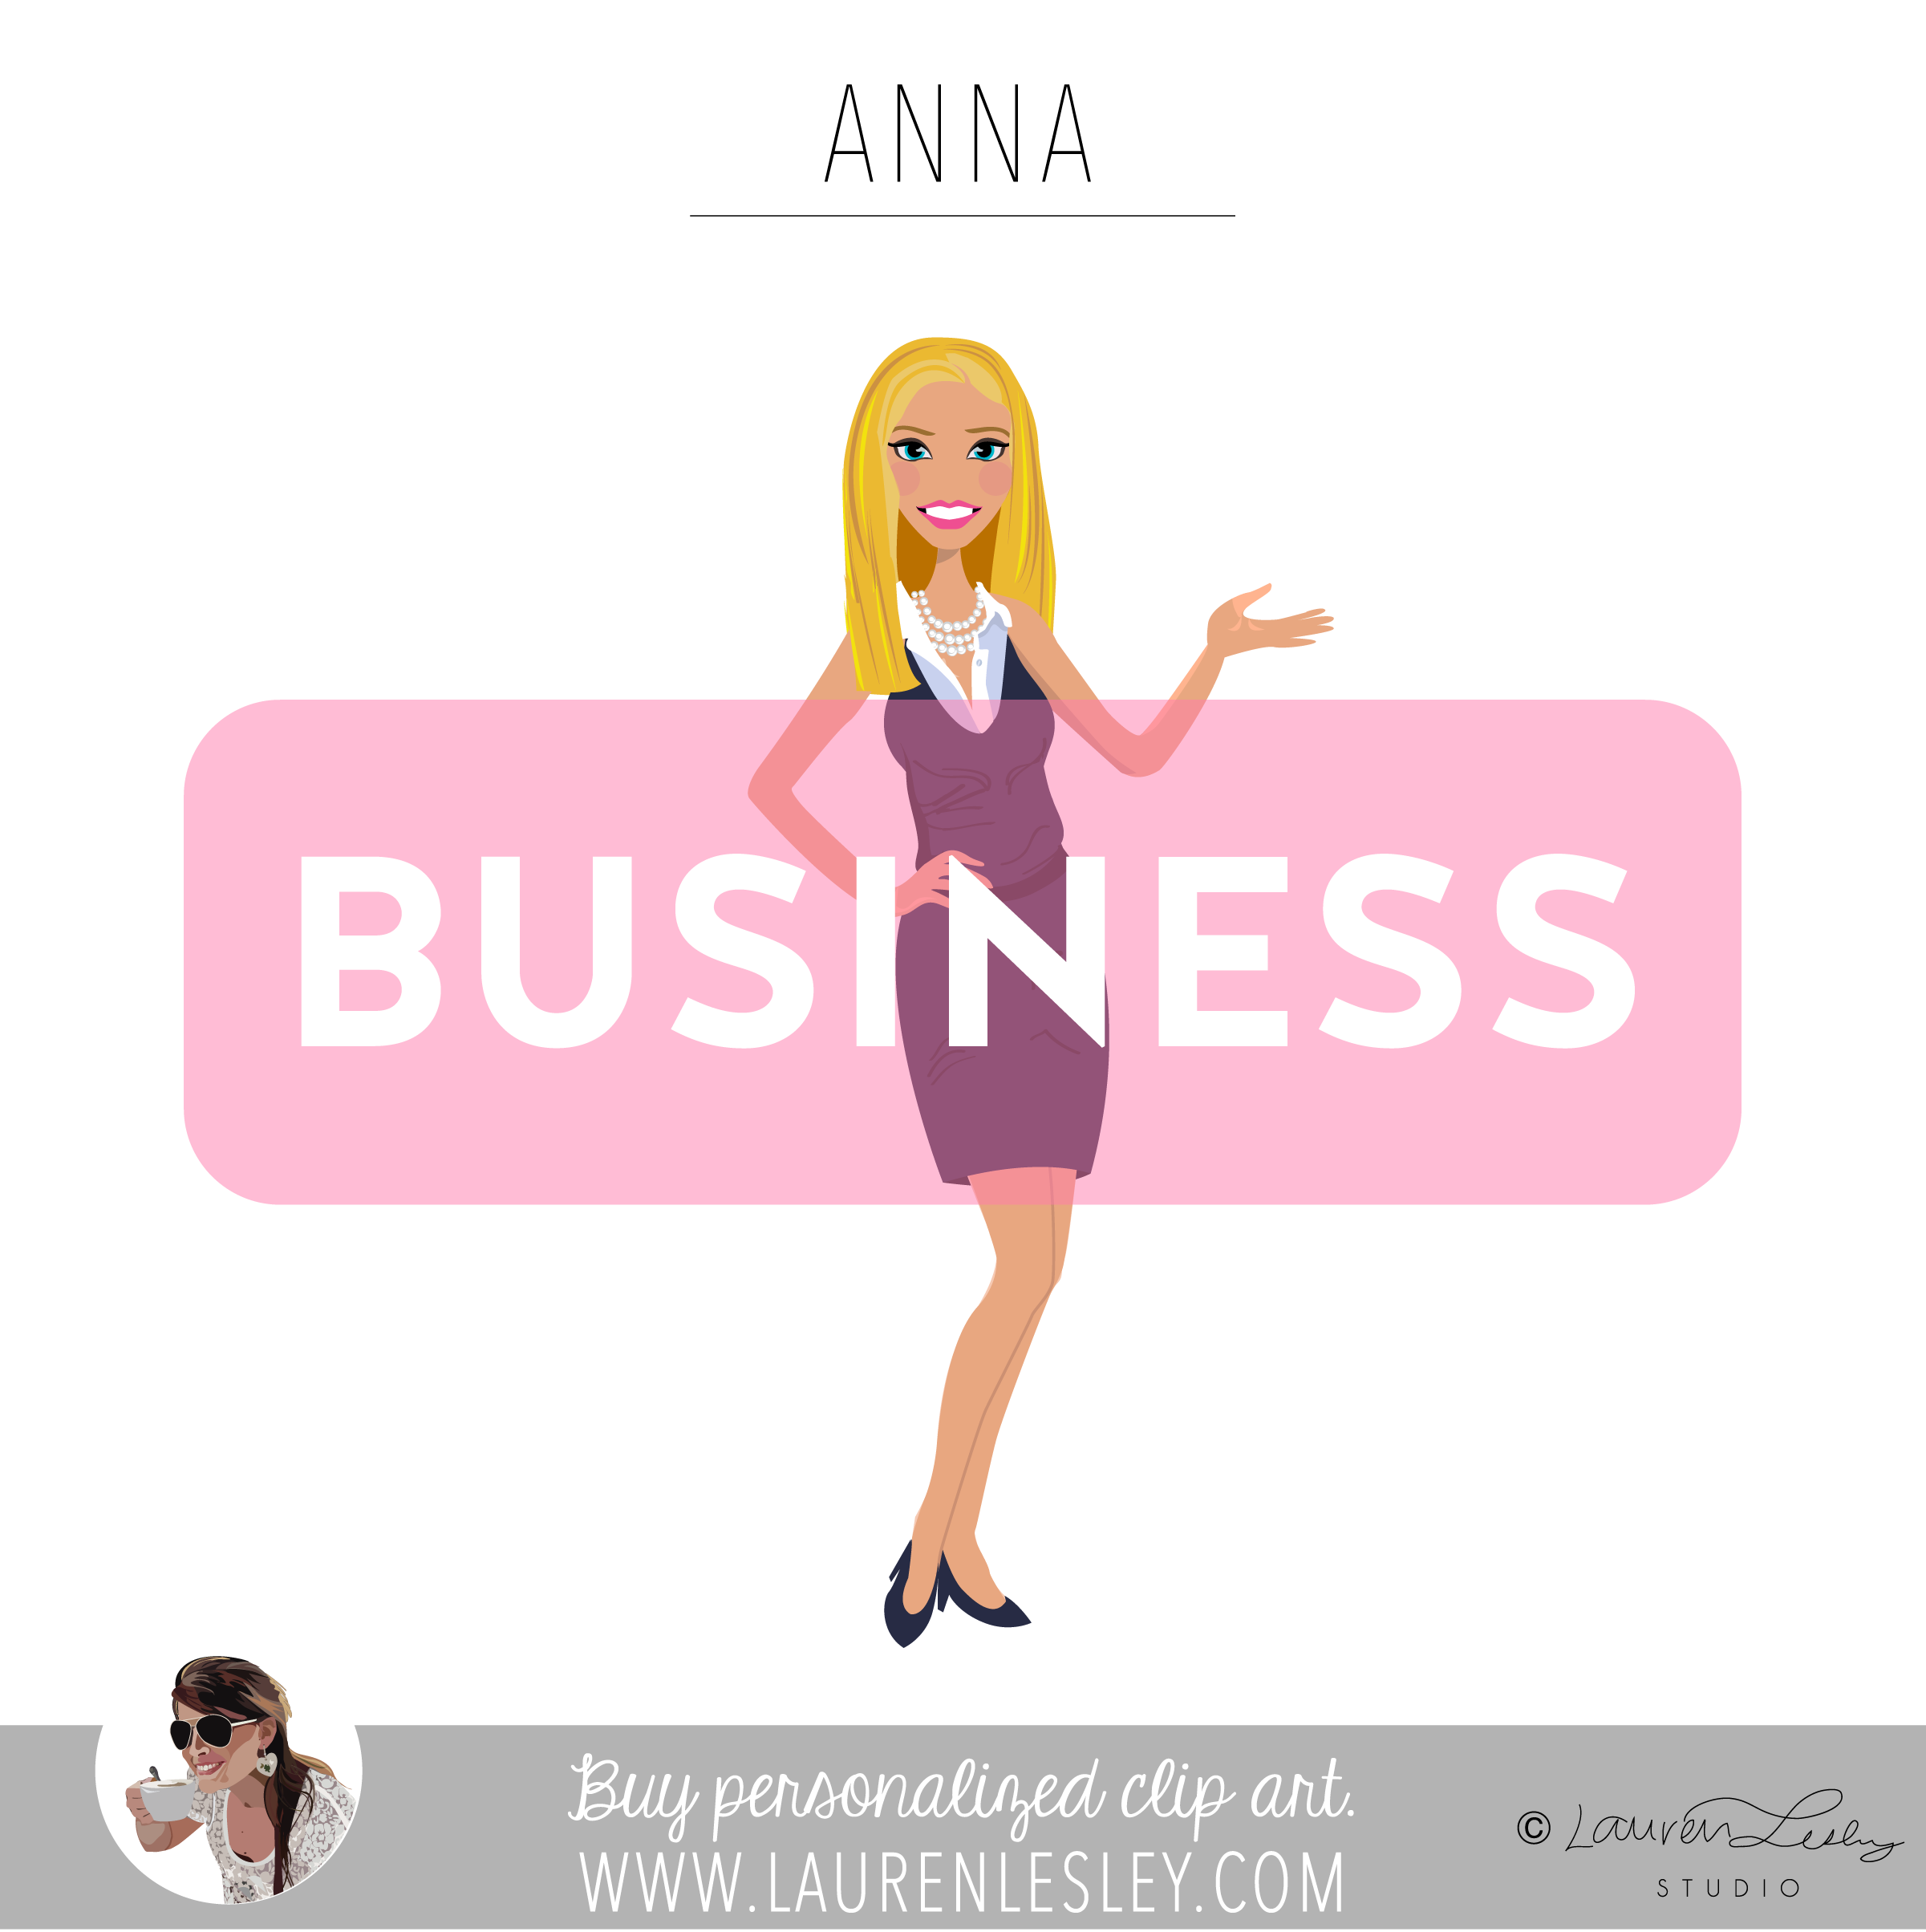 Character_BusinessWoman_Anna_icon-01.png